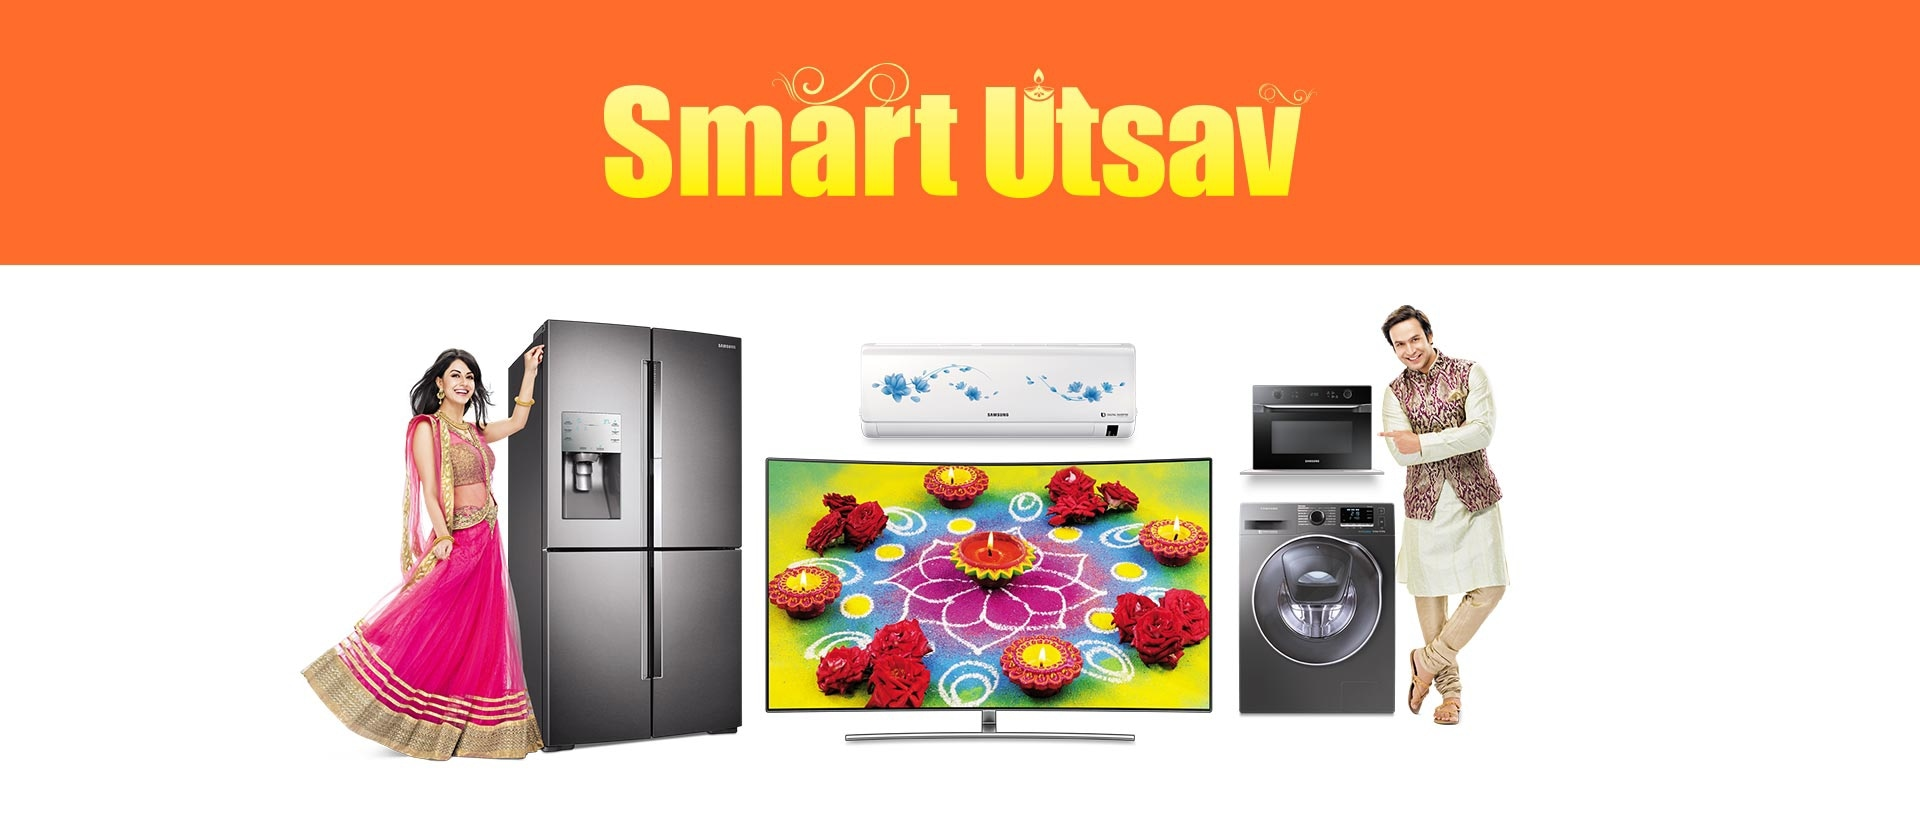 Samsung Smart Utsav Offer - Latest Diwali Offers